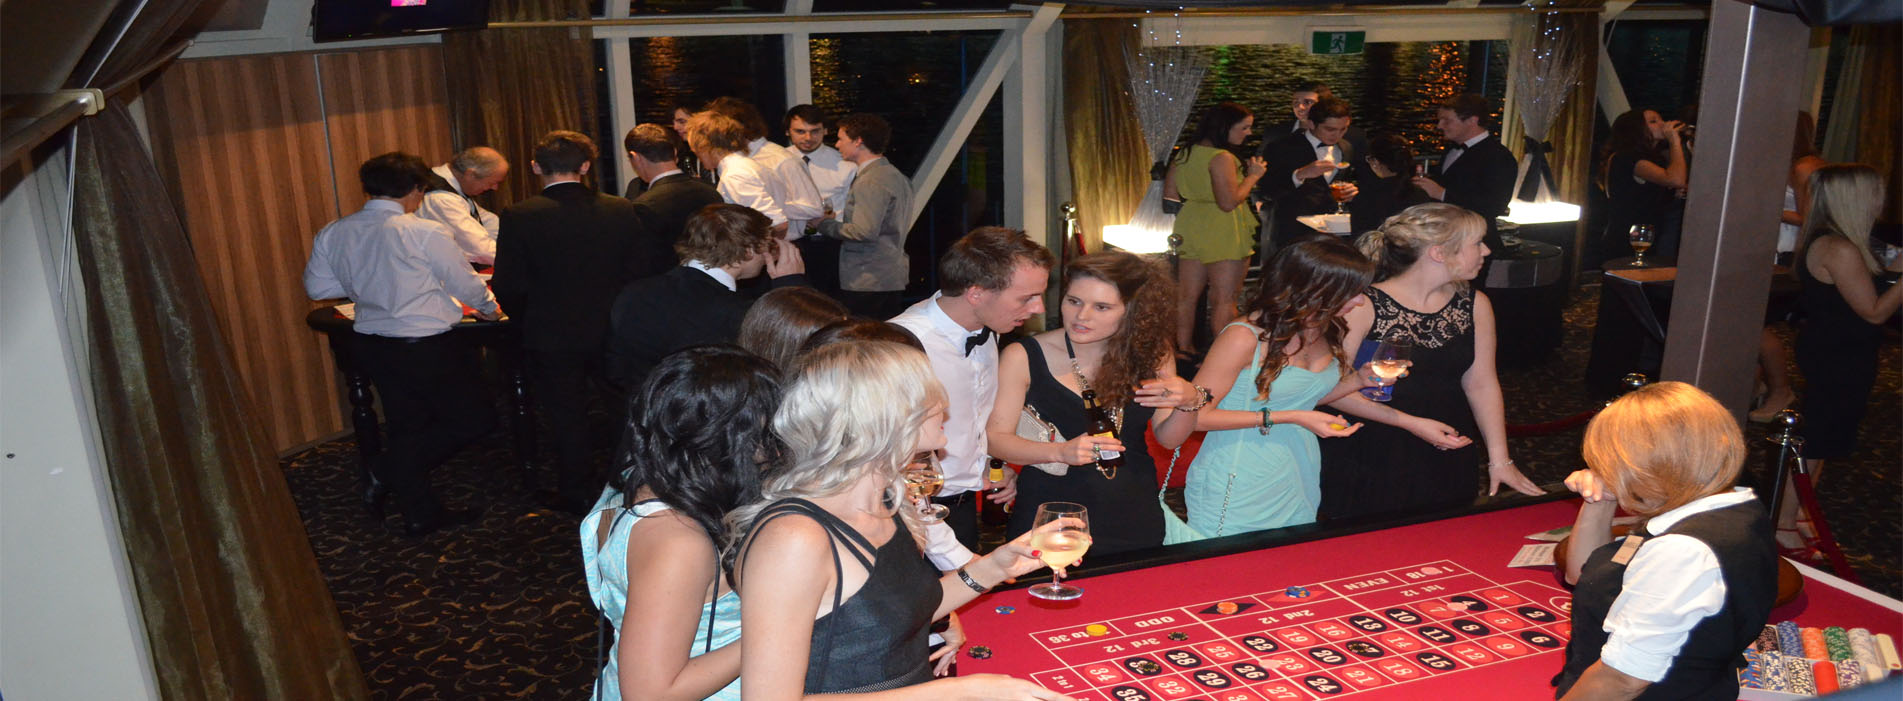 CRYSTAL SWAN Perth boat charters casino night